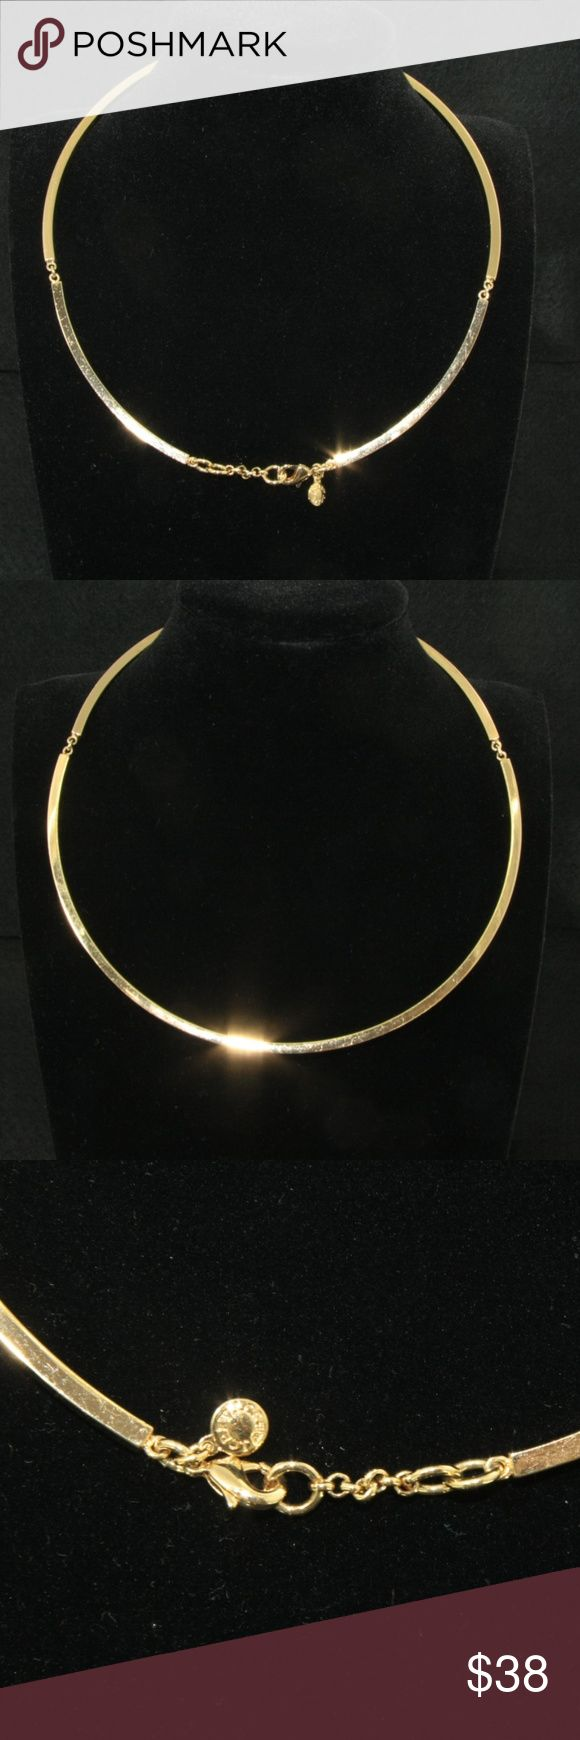 J. Crew Gold Choker J. Crew Gold Choker.  Gold Tone. 1 inch adjustable chain extender. Closure has signature J. Crew disc.  Versatile! A great neutral that goes well with lots of different necklines, from tee shirts to formal dresses.  Used item: any wear shown in pics. No major scratches, but some rubbing consistent with gentle use.  Bundle Up!  Offers always welcome : ) J. Crew Jewelry Necklaces #GoldJewelleryFormal